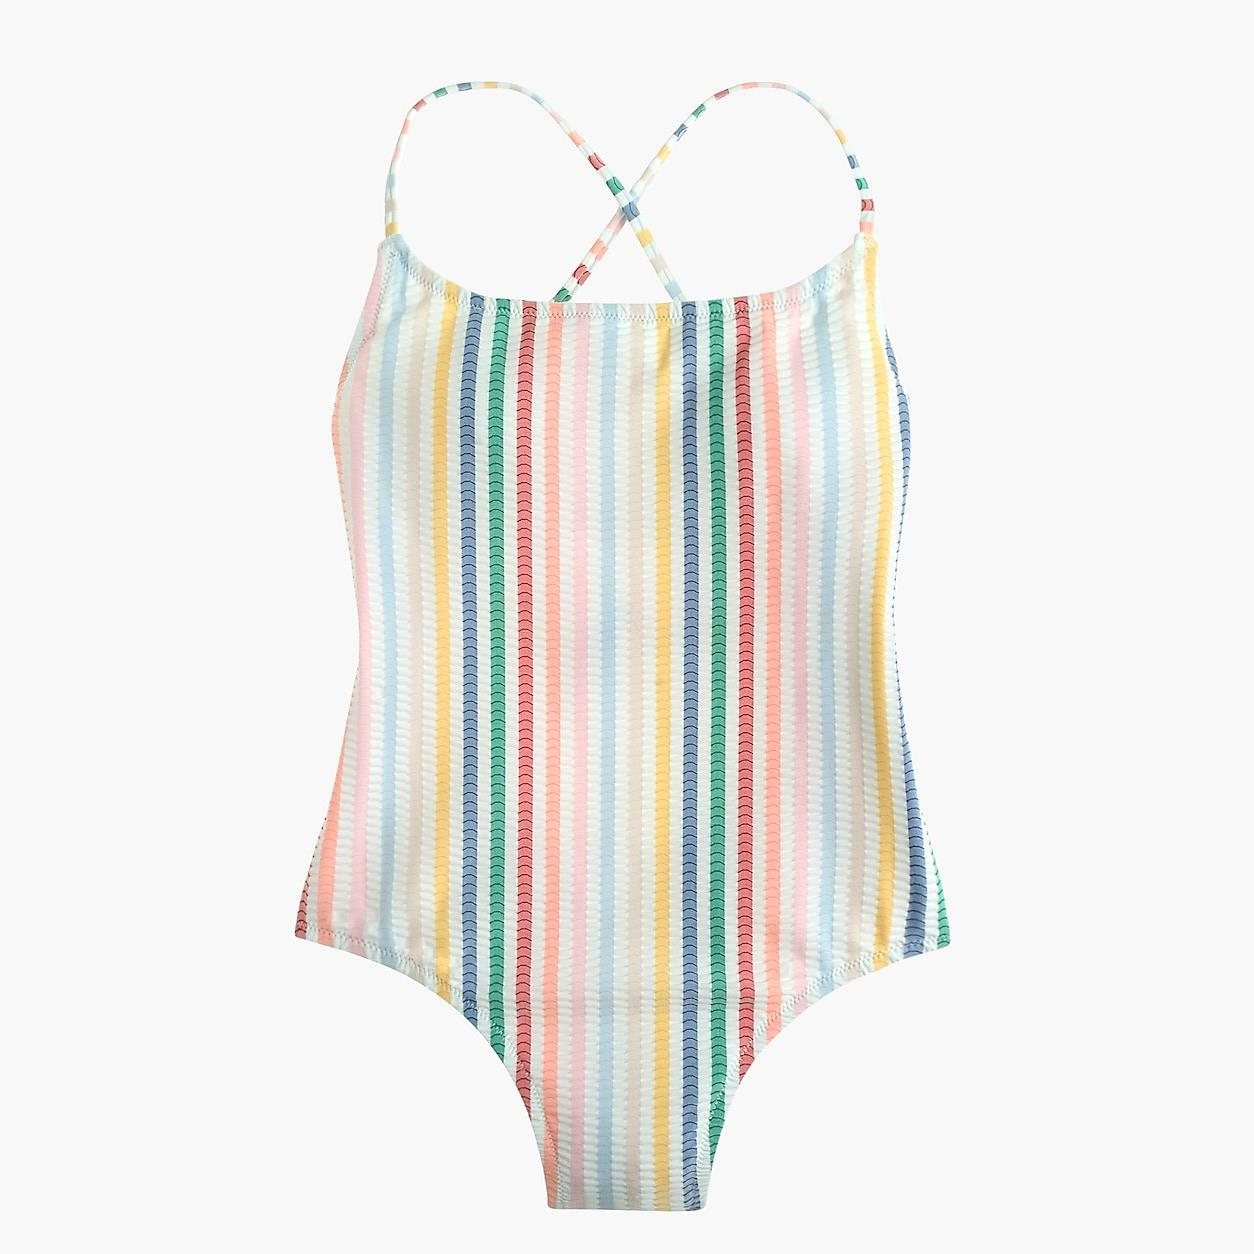 Lace-Up Back One-Piece Swimsuit In Suckered Rainbow Stripe